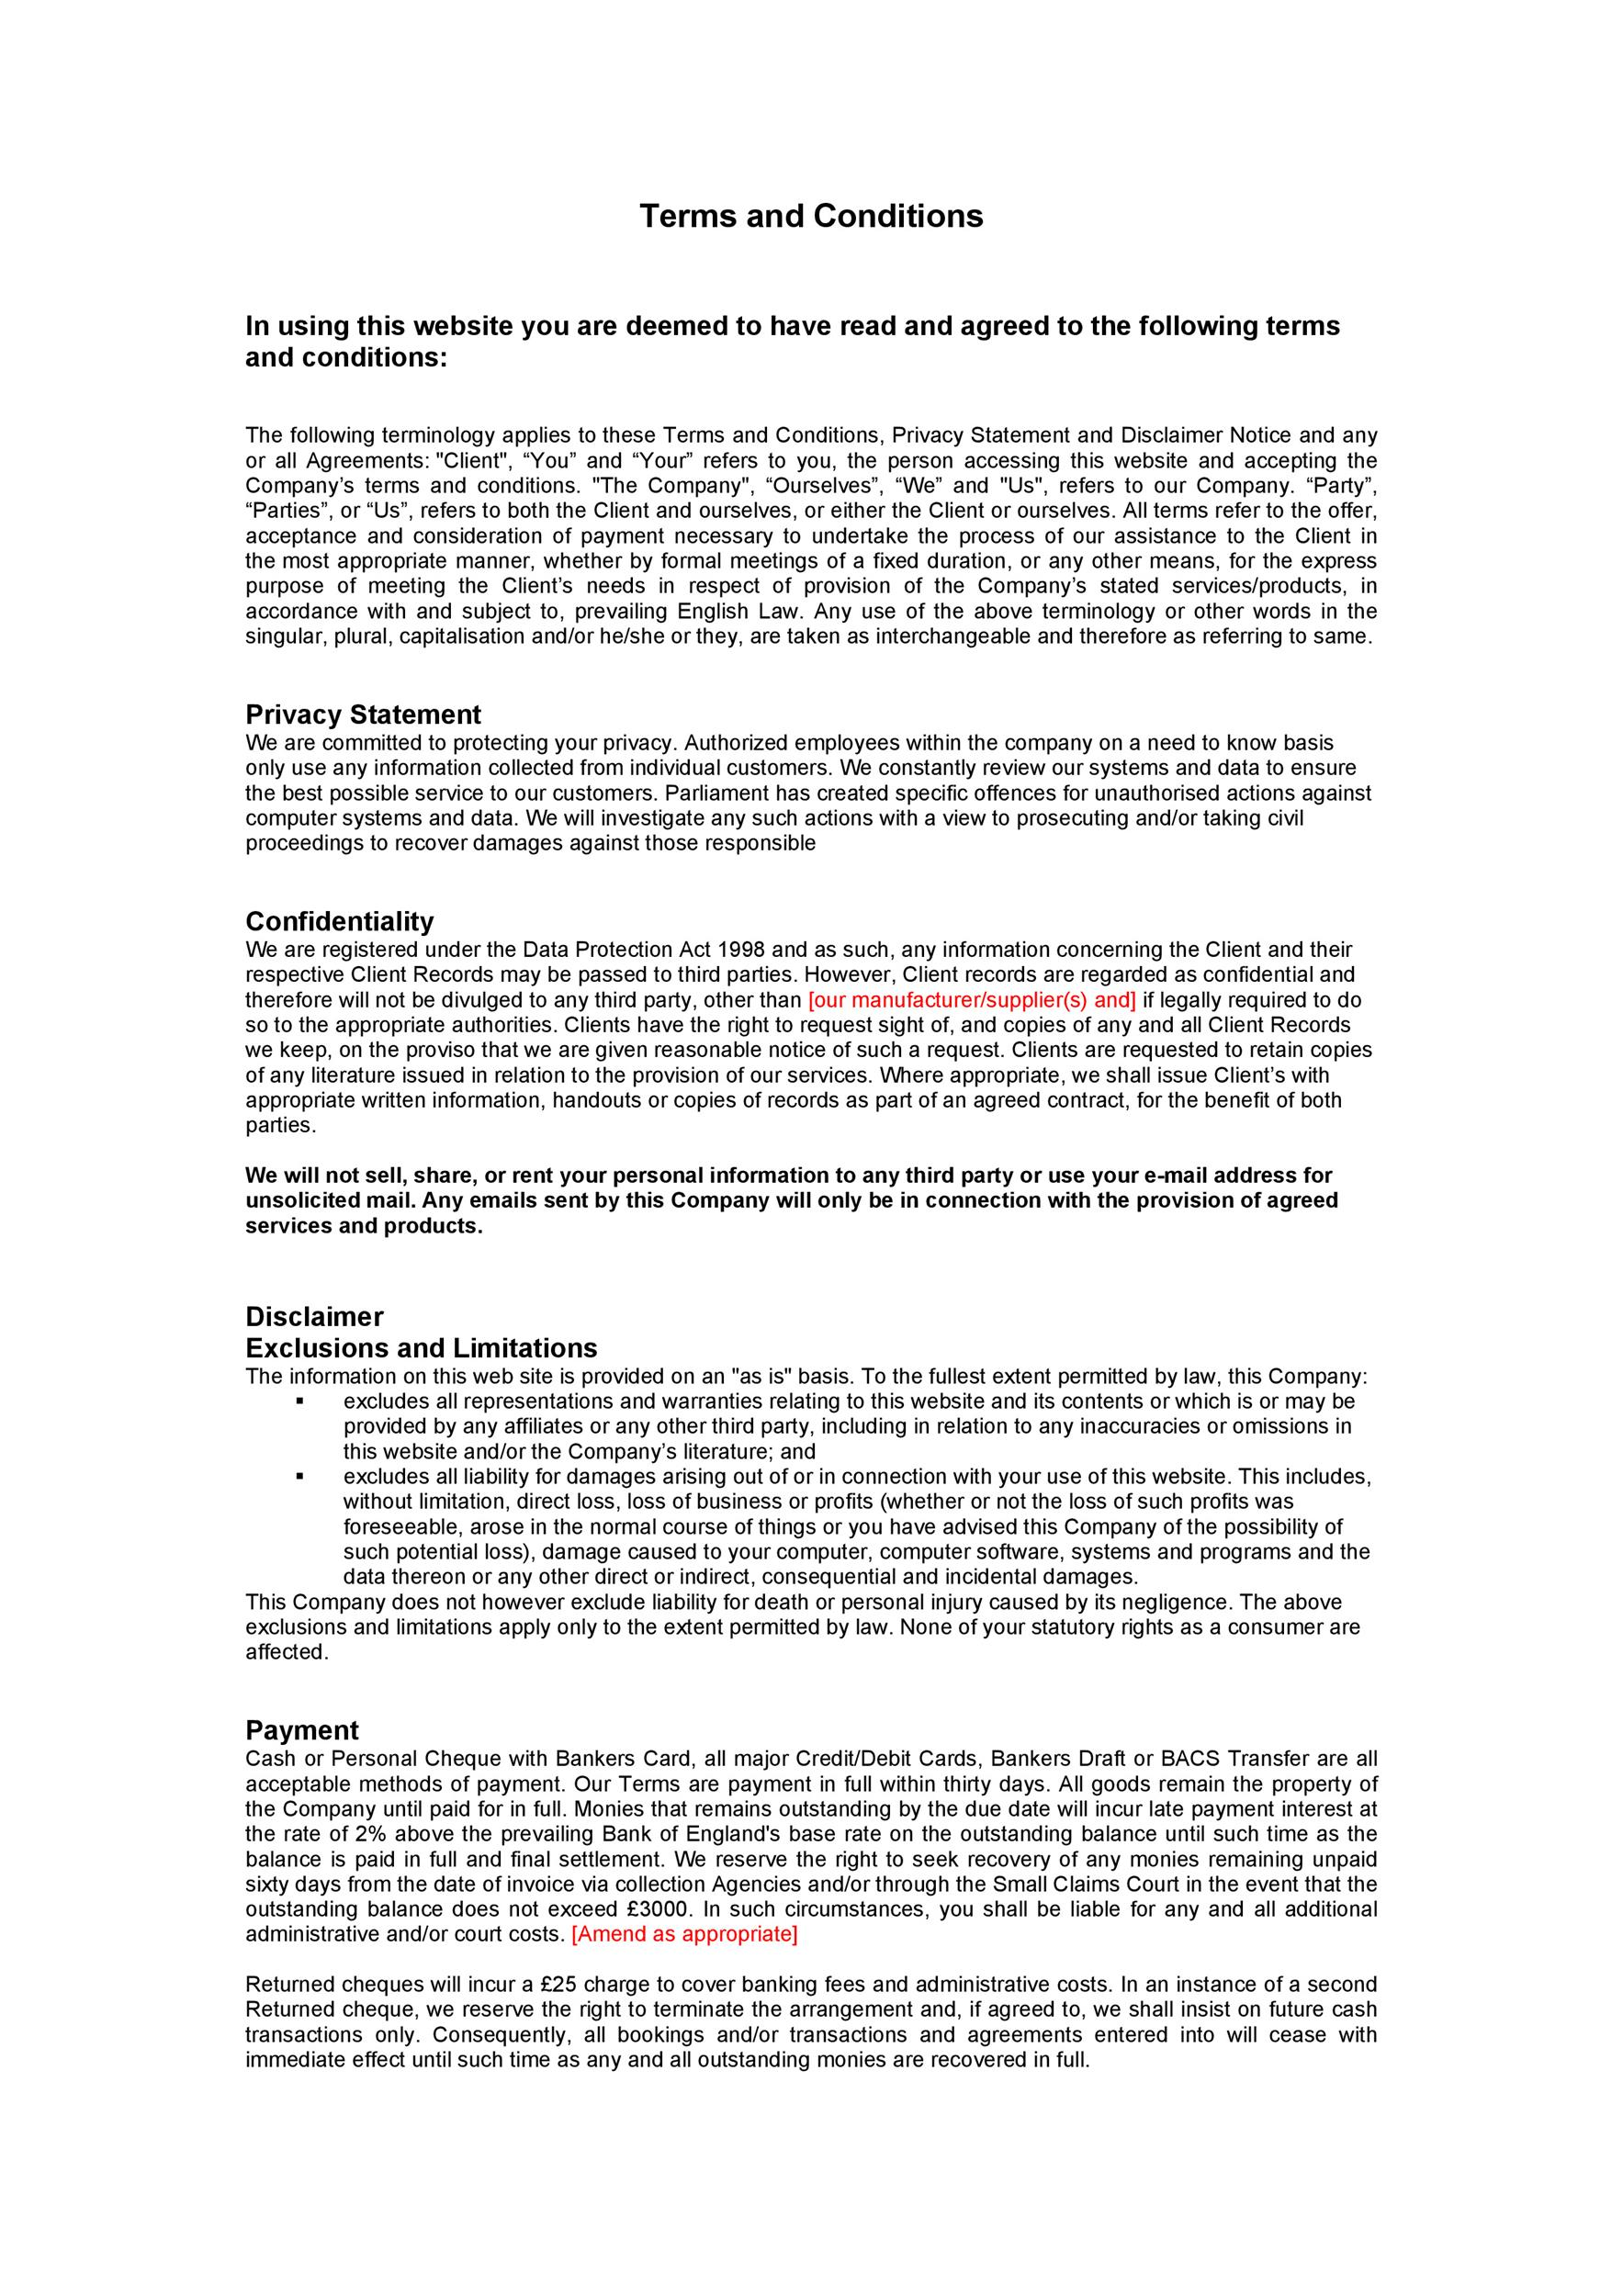 Free terms and conditions template 10